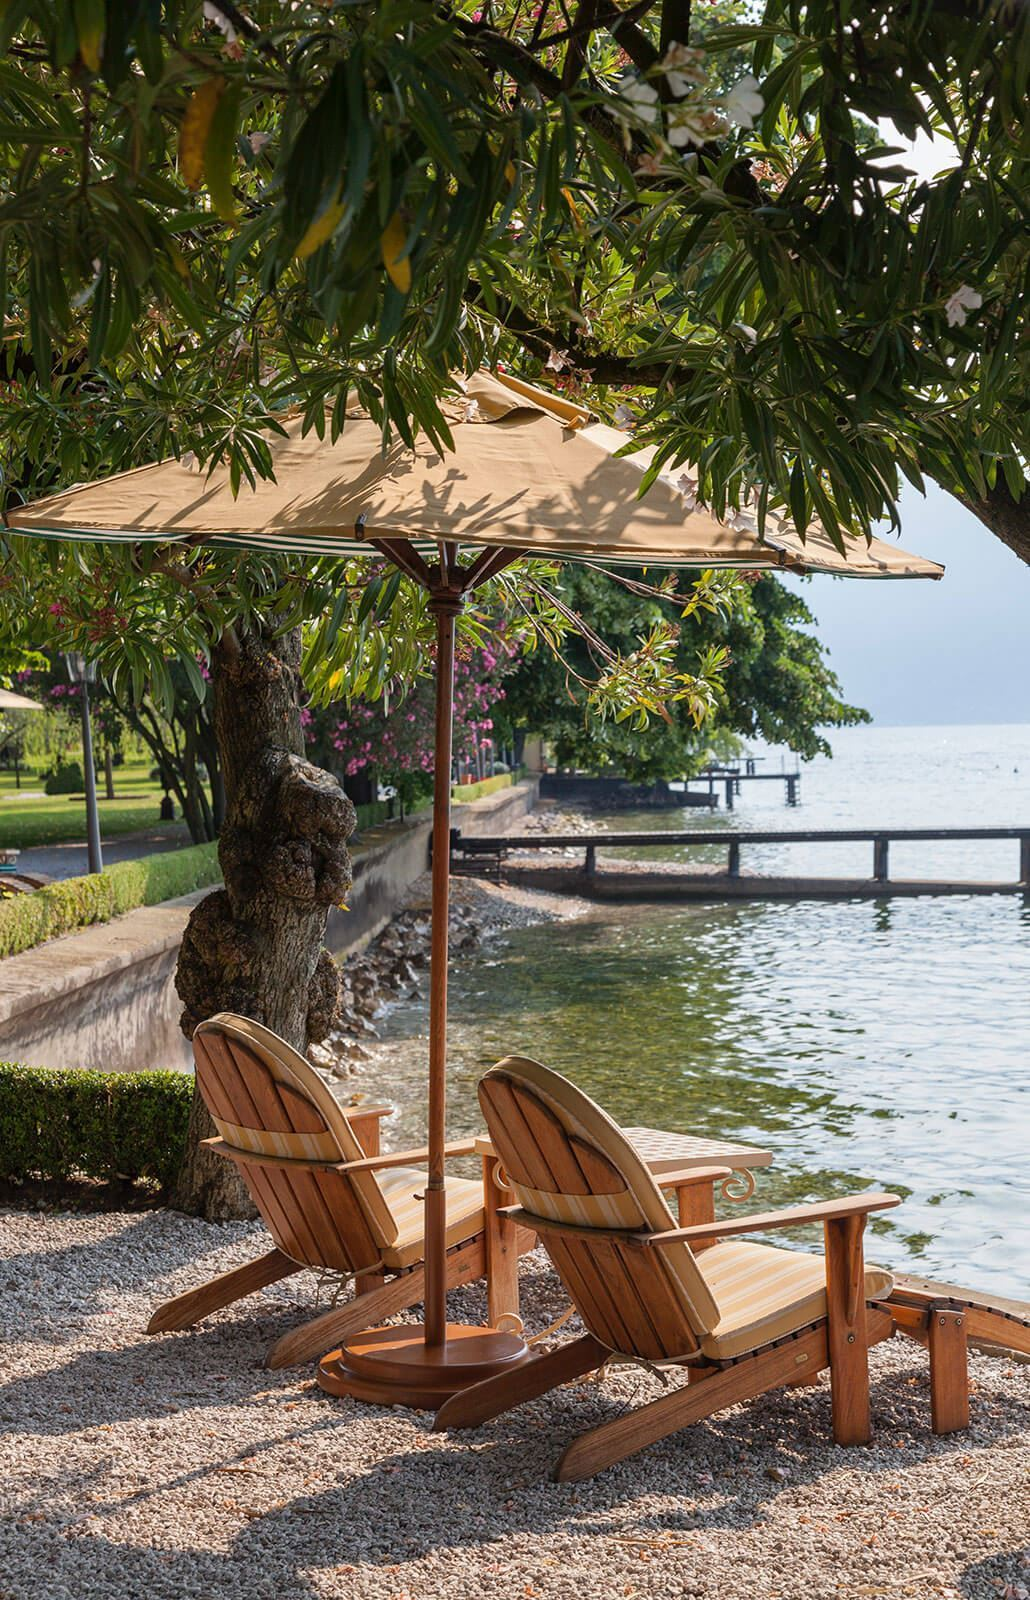 Grand-Hotel-Villa-Feltrinelli-Lake-Garda-Fresh water that calms the mind and regenerates the spirit